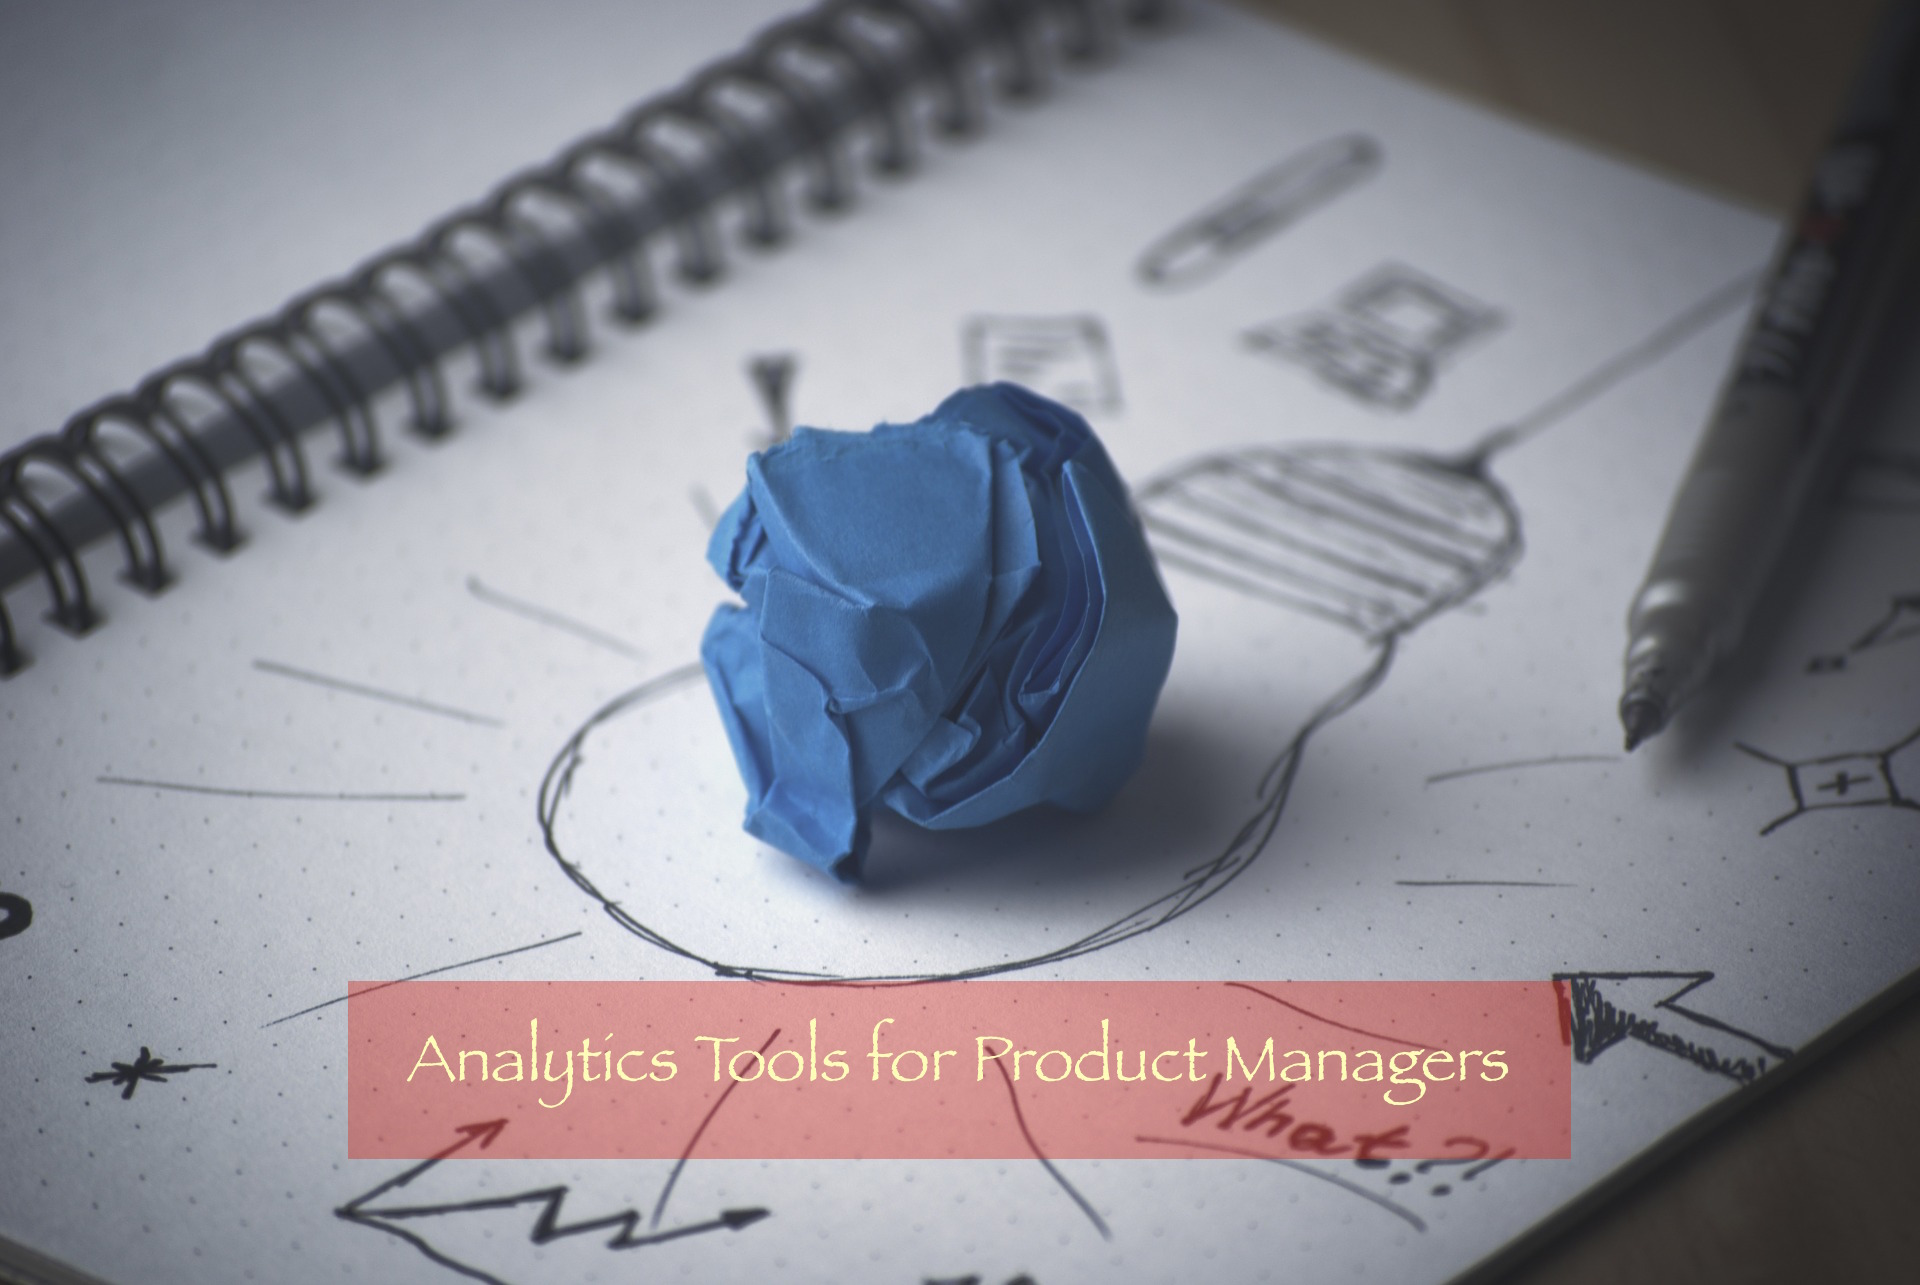 Best Analytics Tools for Product Managers